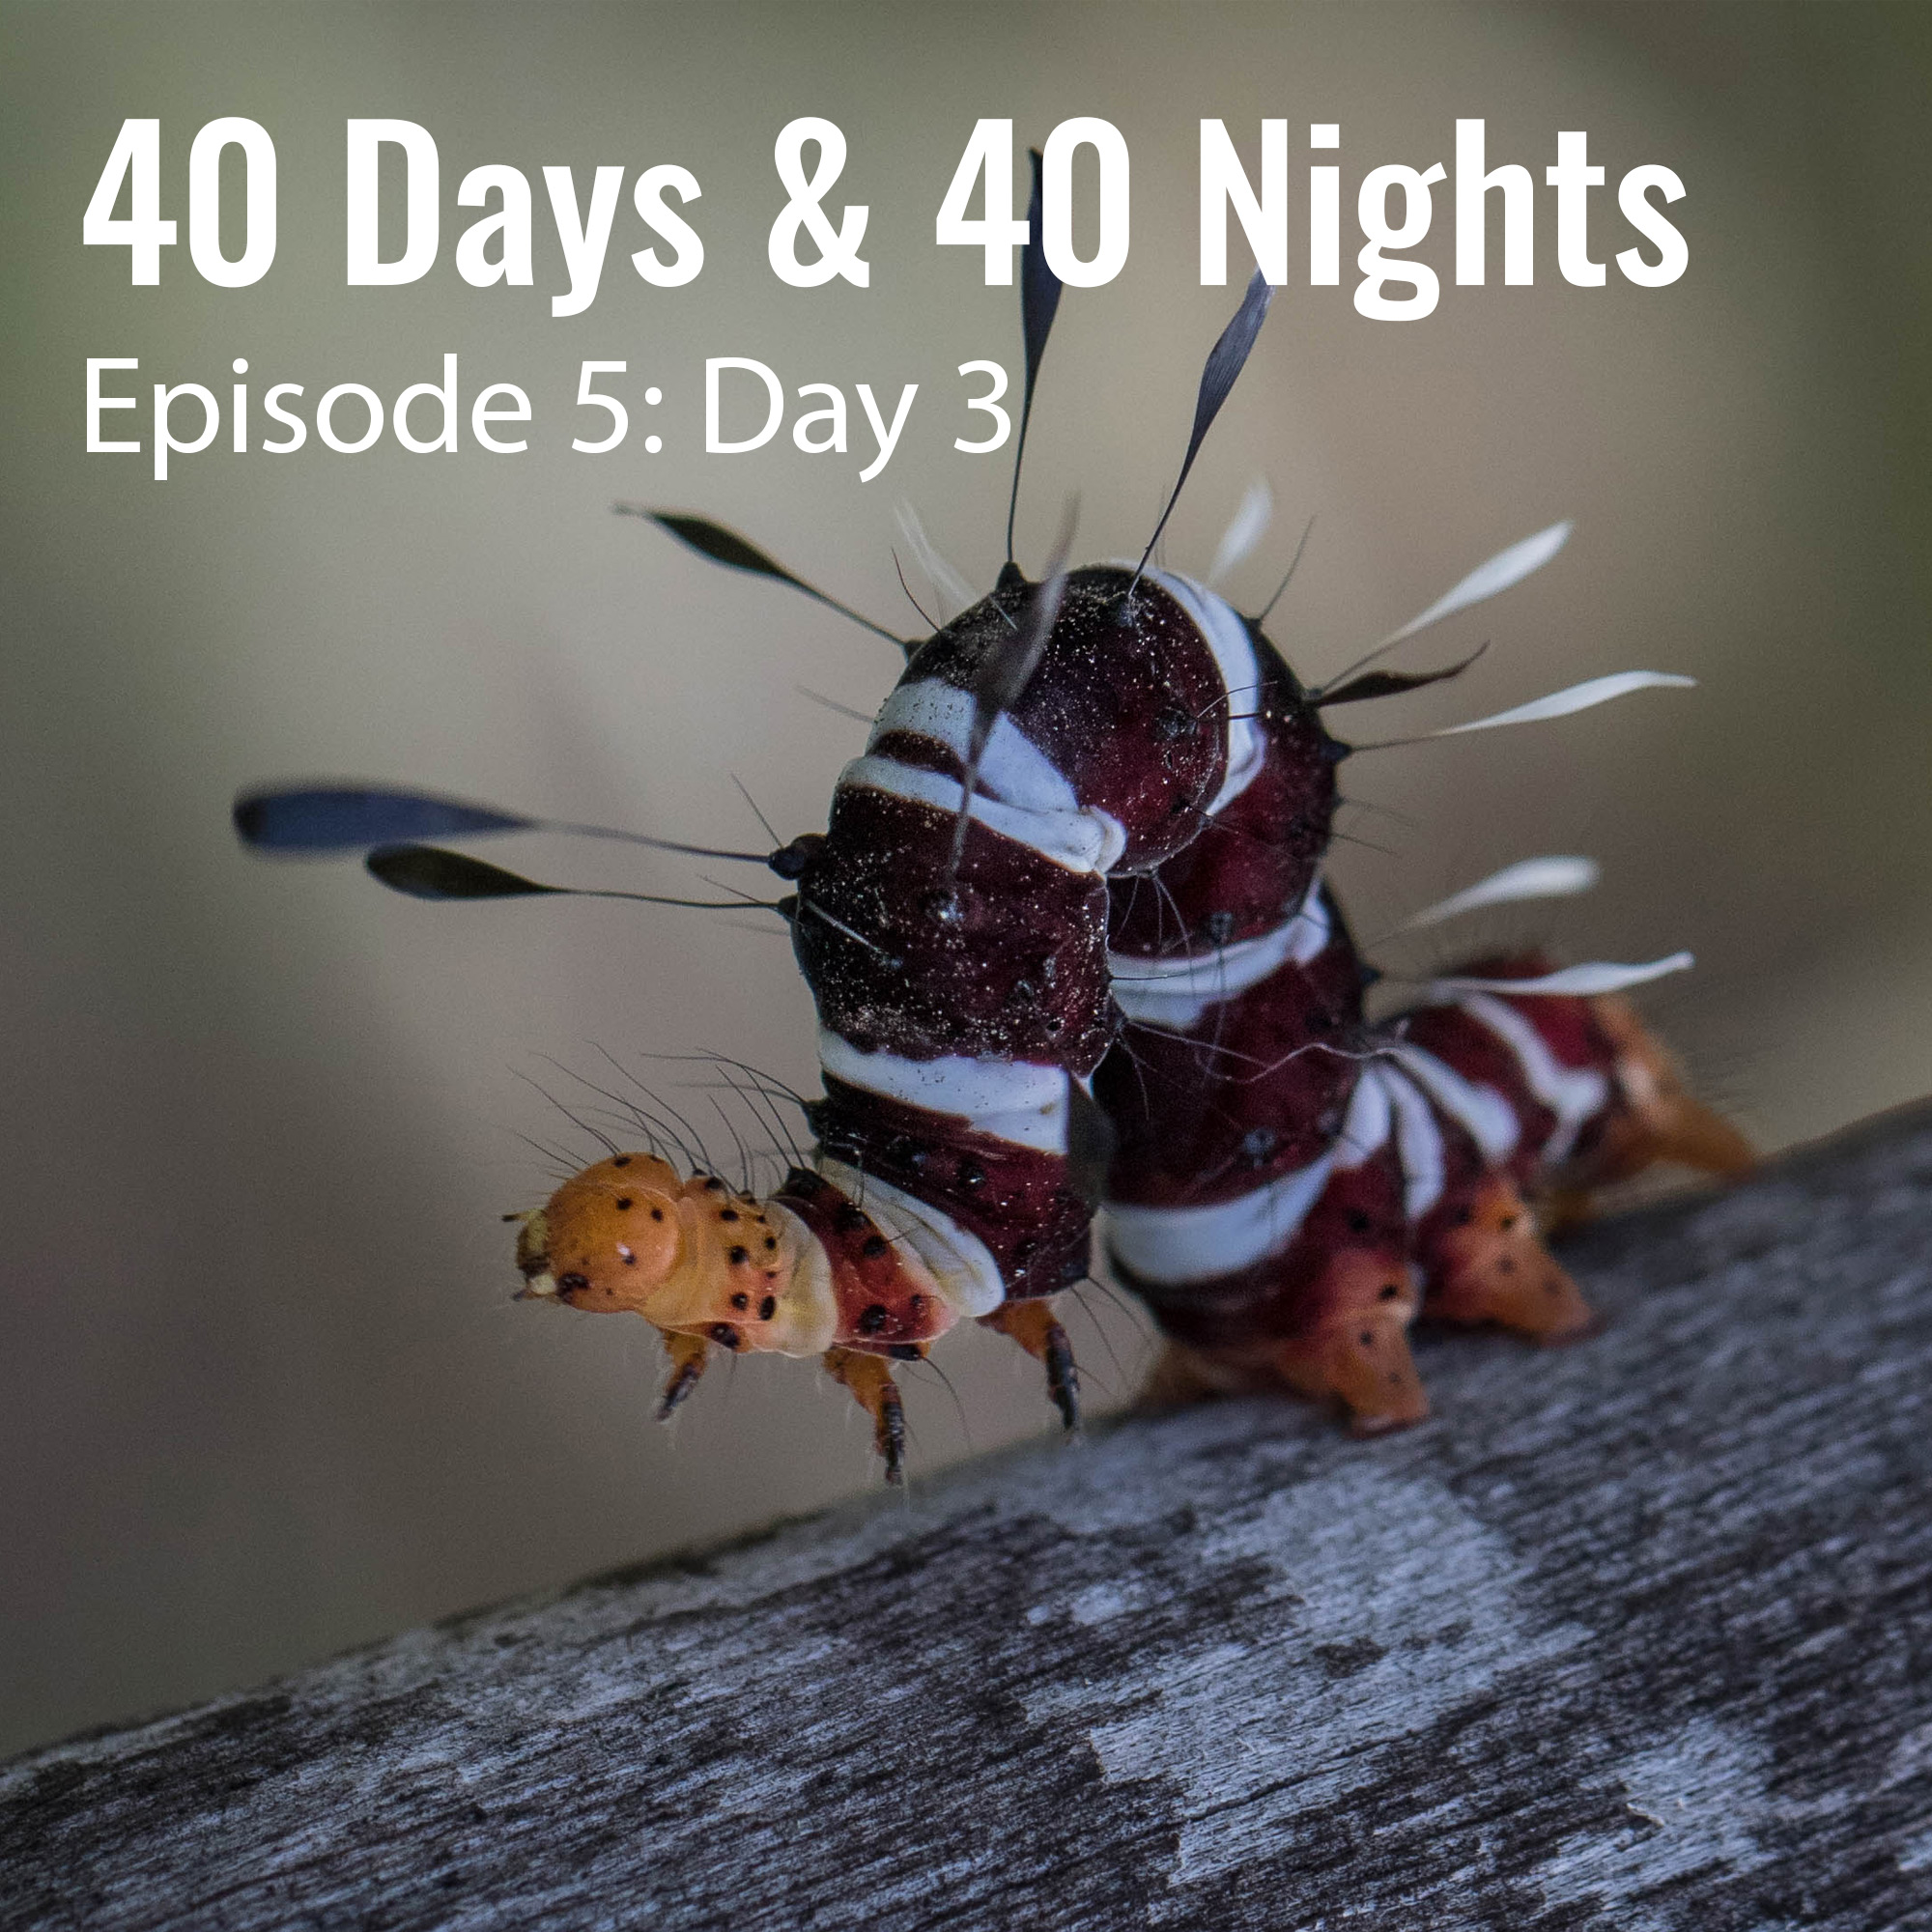 5-Day-3-40 Days and 40 Nights